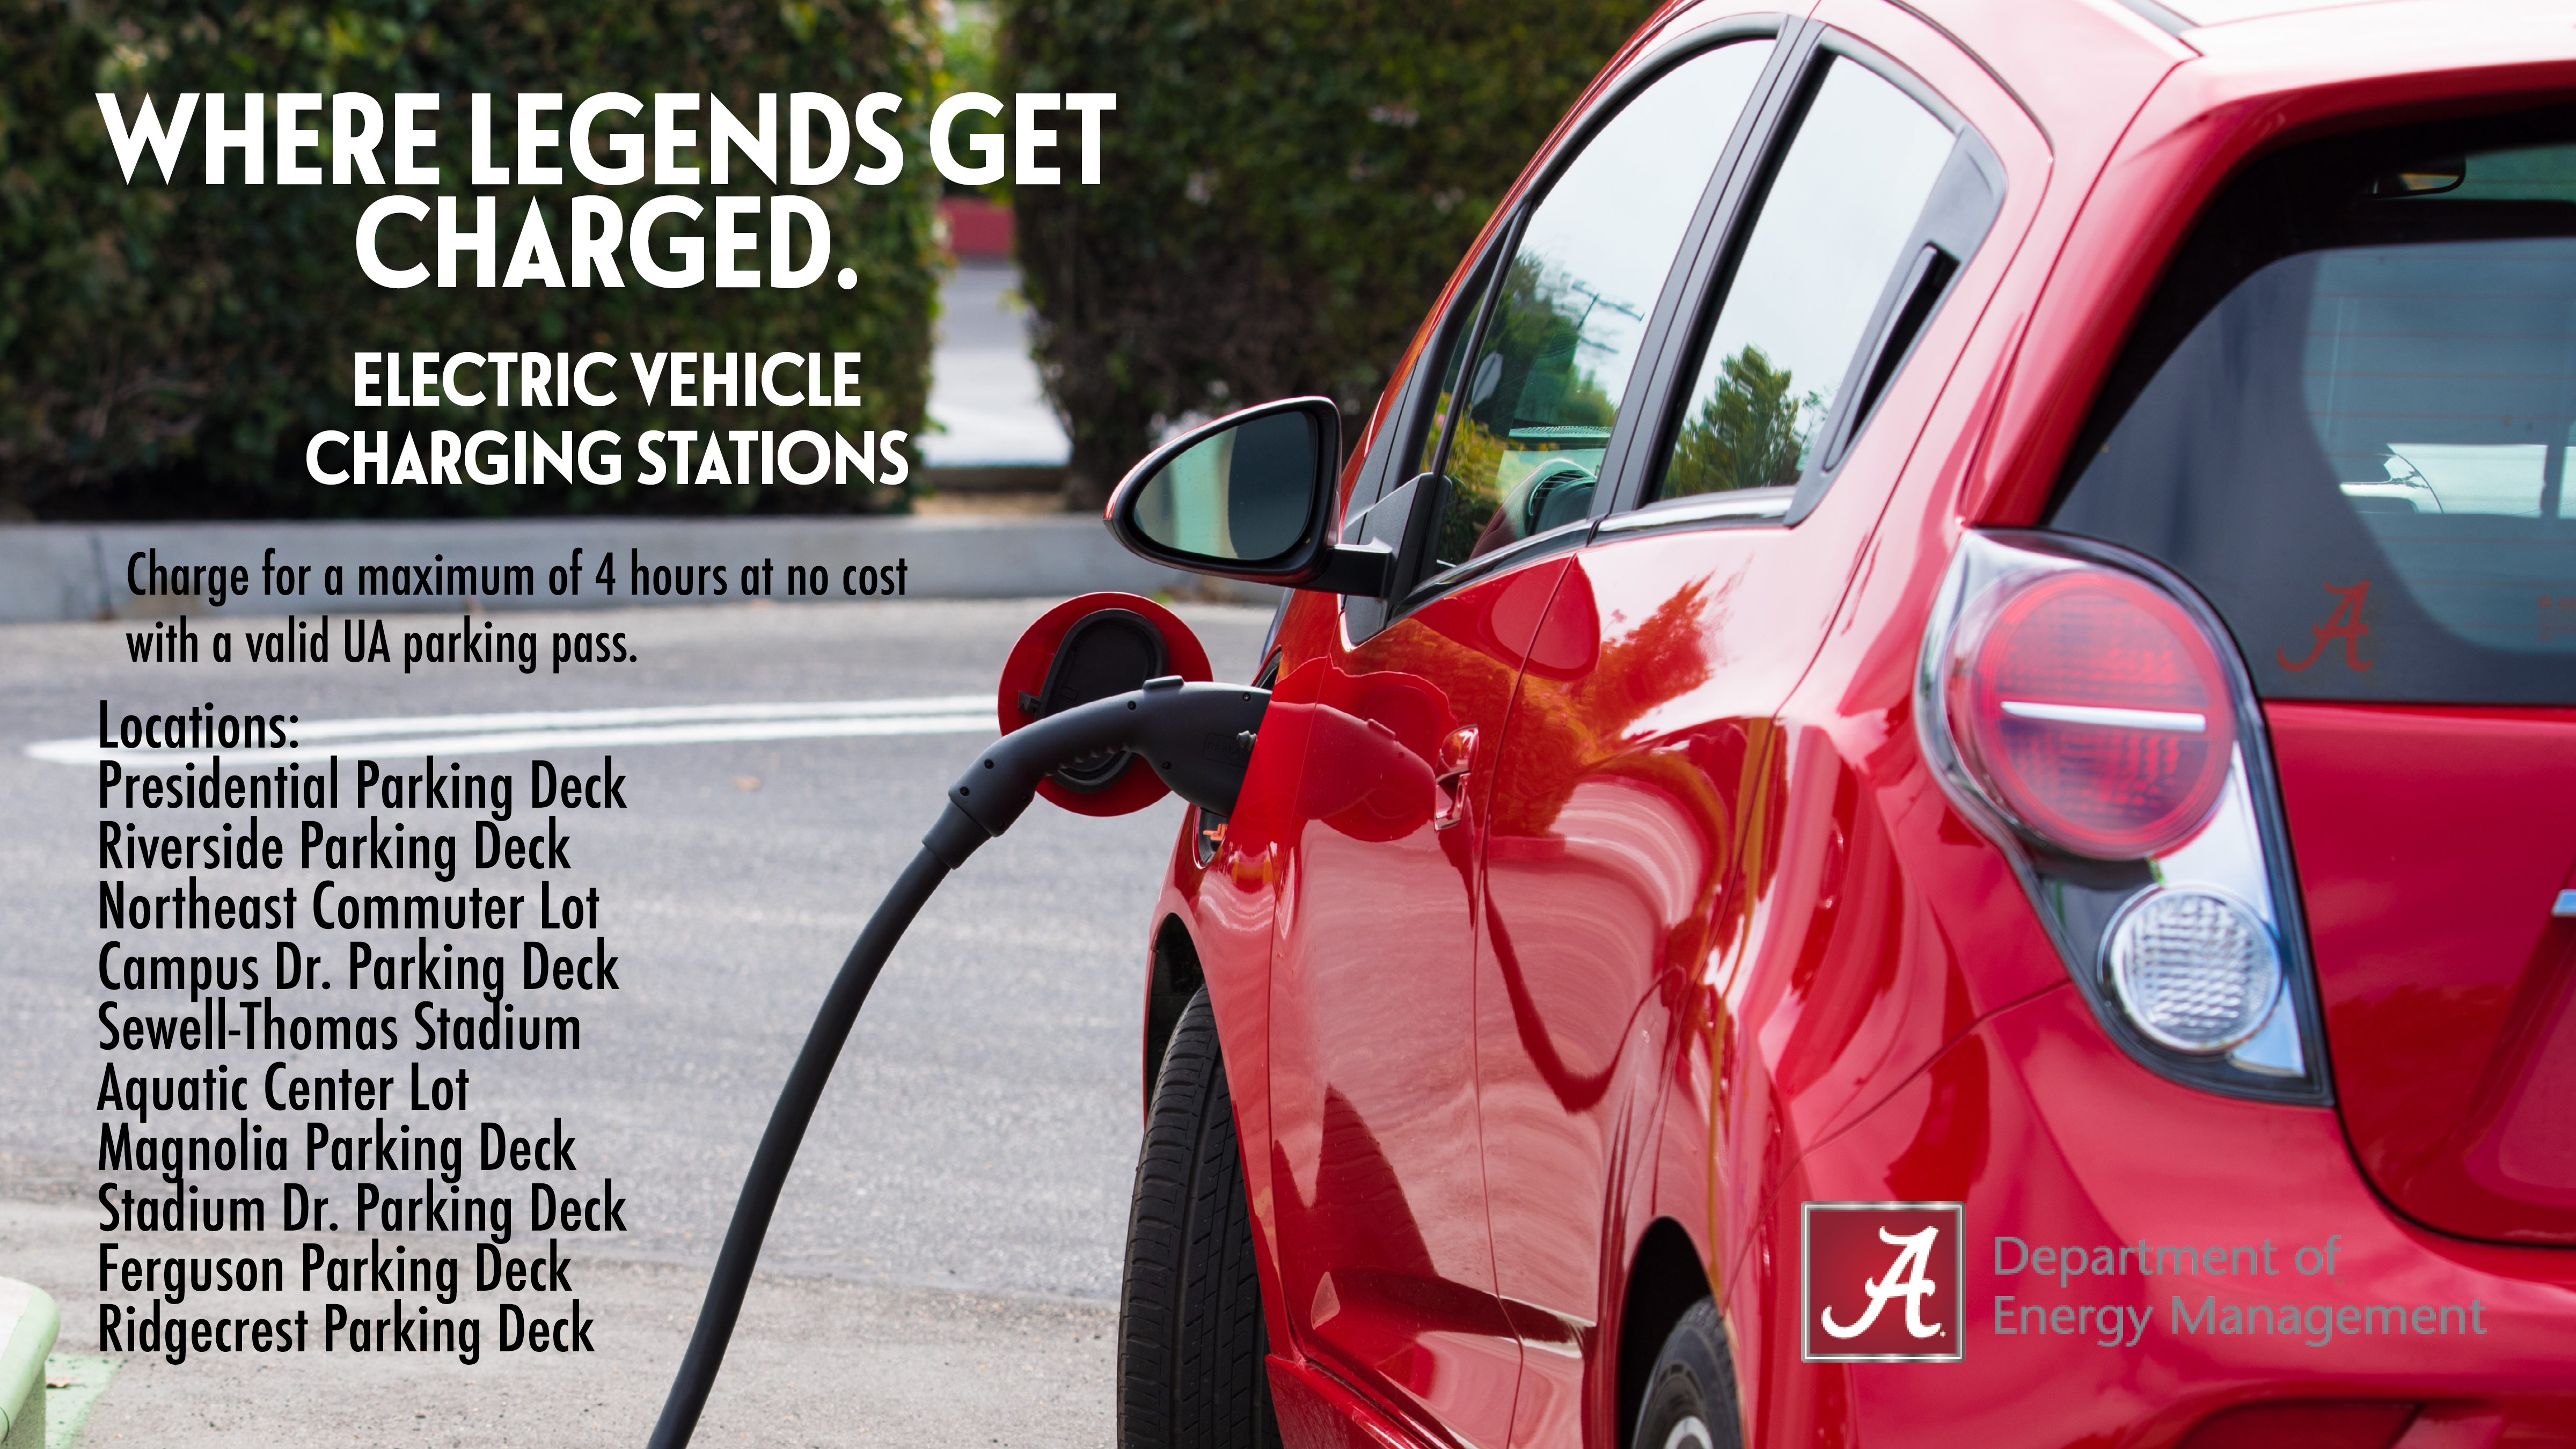 UA Parking Pass holders can find electric vehicle charging stations at multiple locations on campus